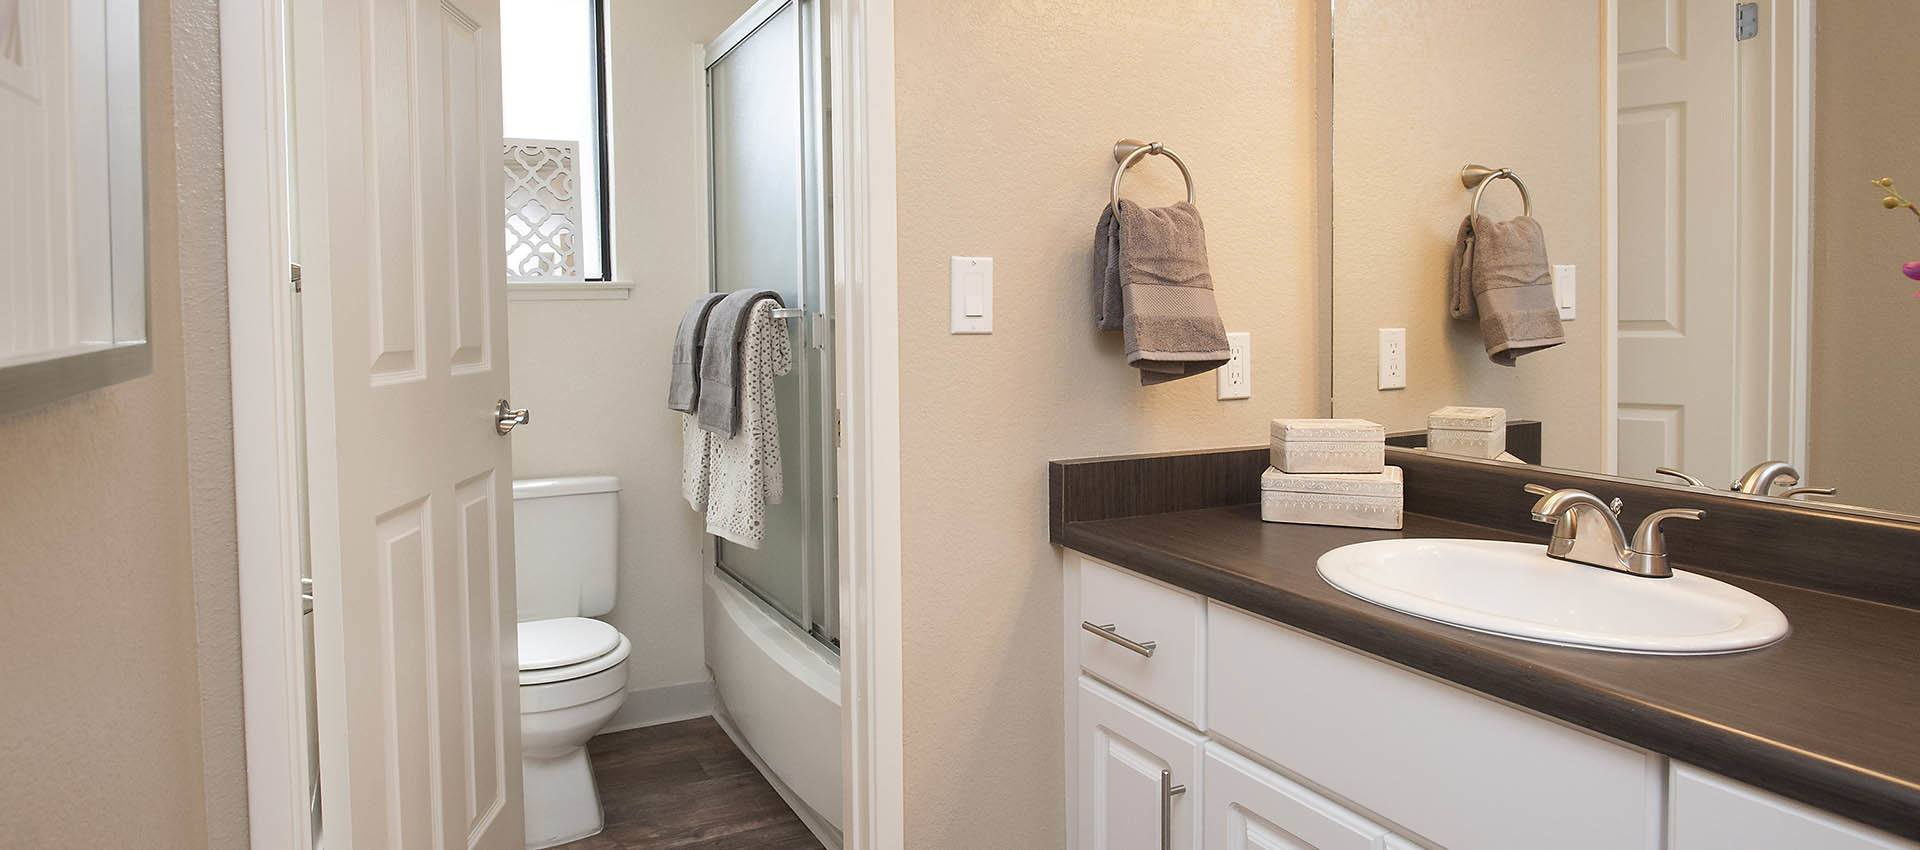 Large Bathroom With Private Shower And Commode at Hidden Lake Condominium Rentals in Sacramento, CA